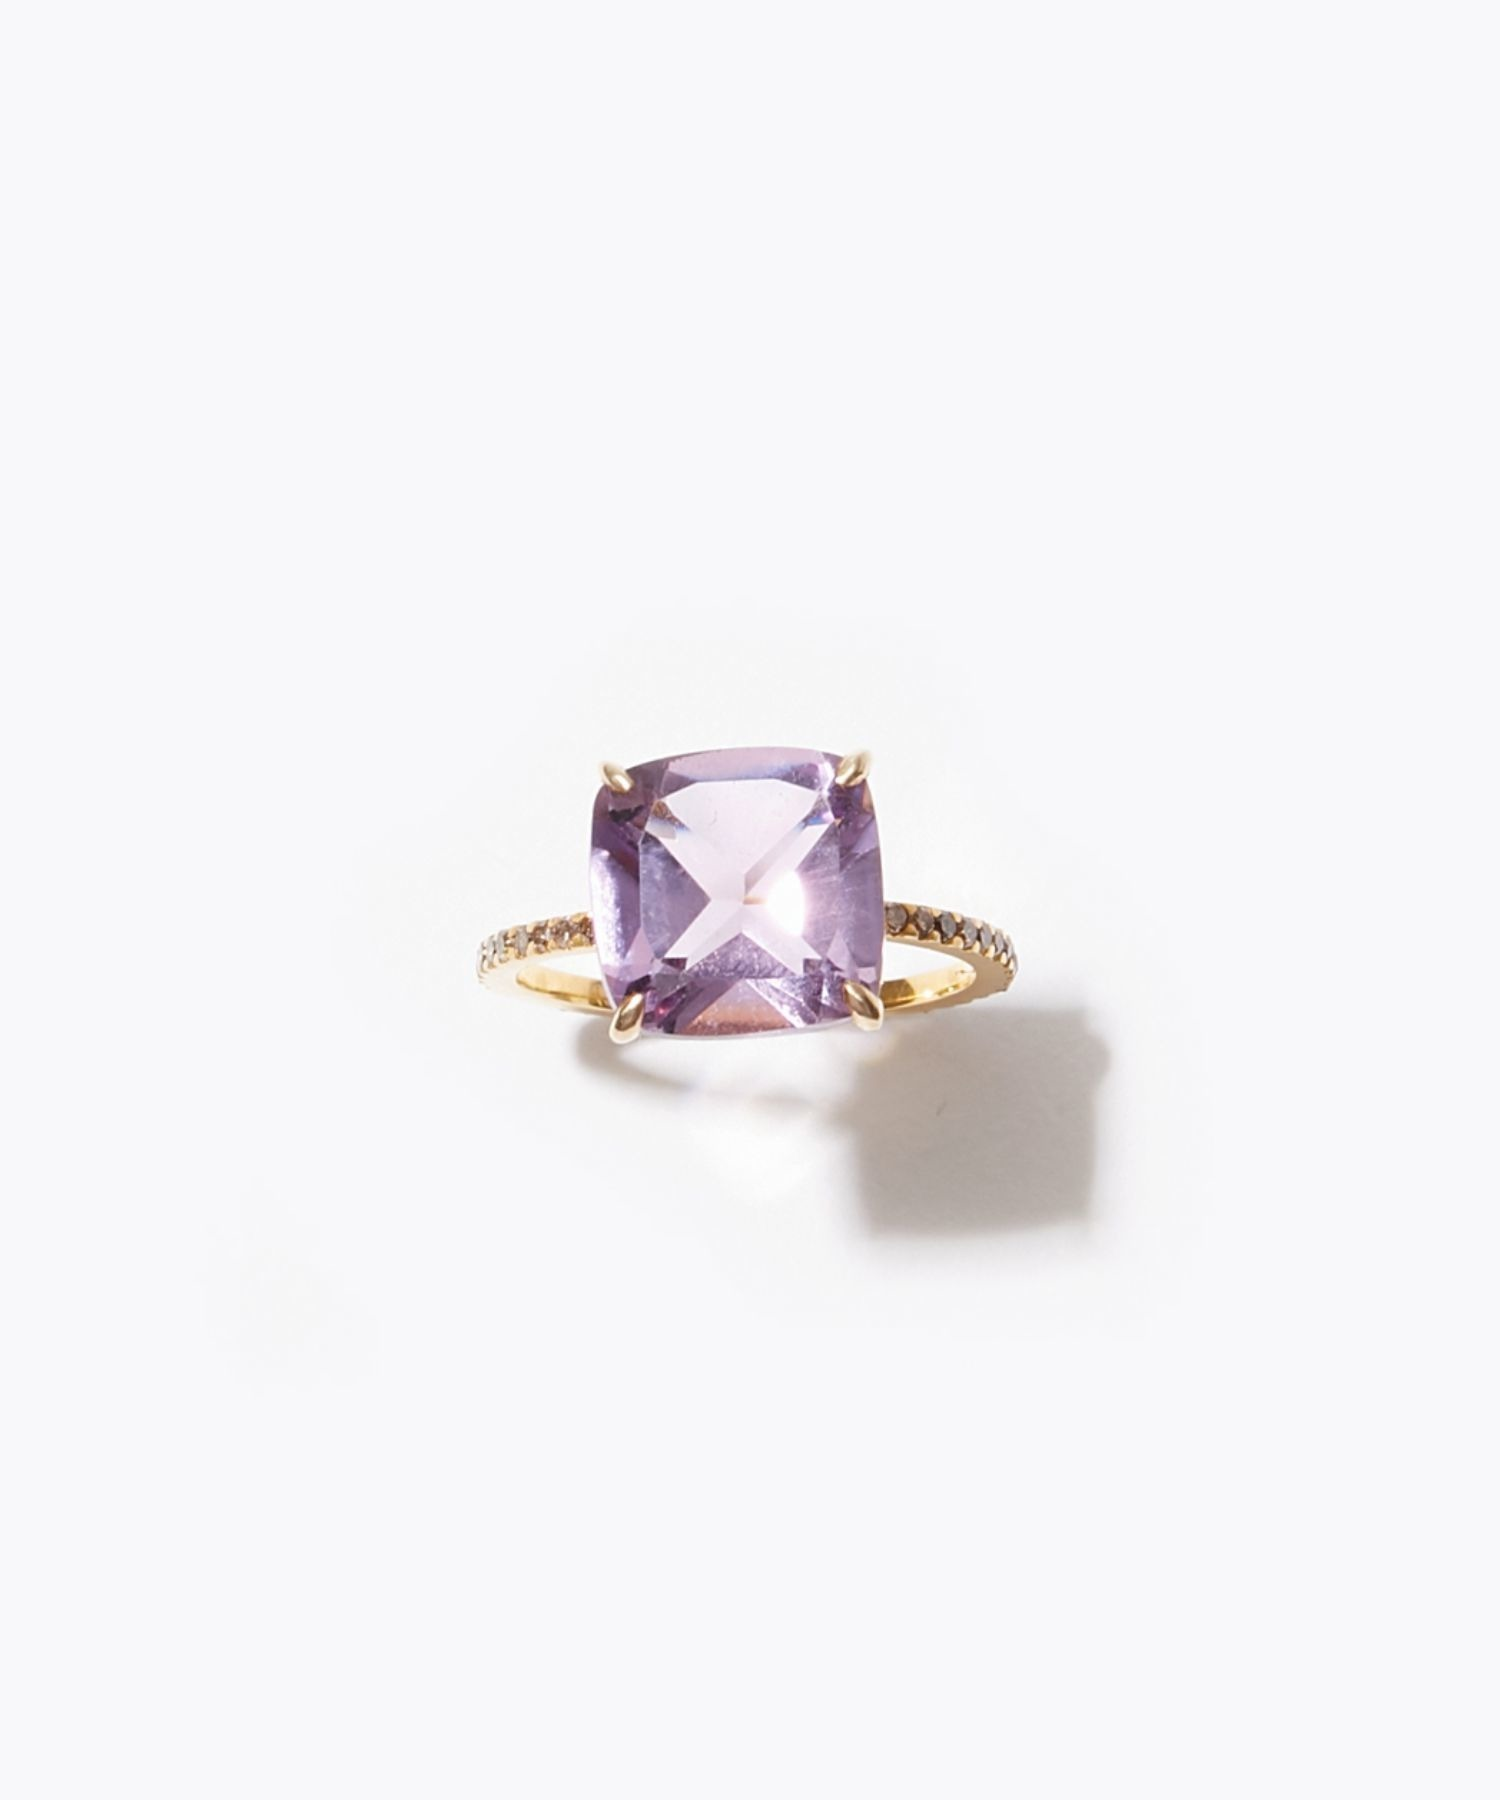 [eden] K10 cushion cut amethyst and pave diamonds ring